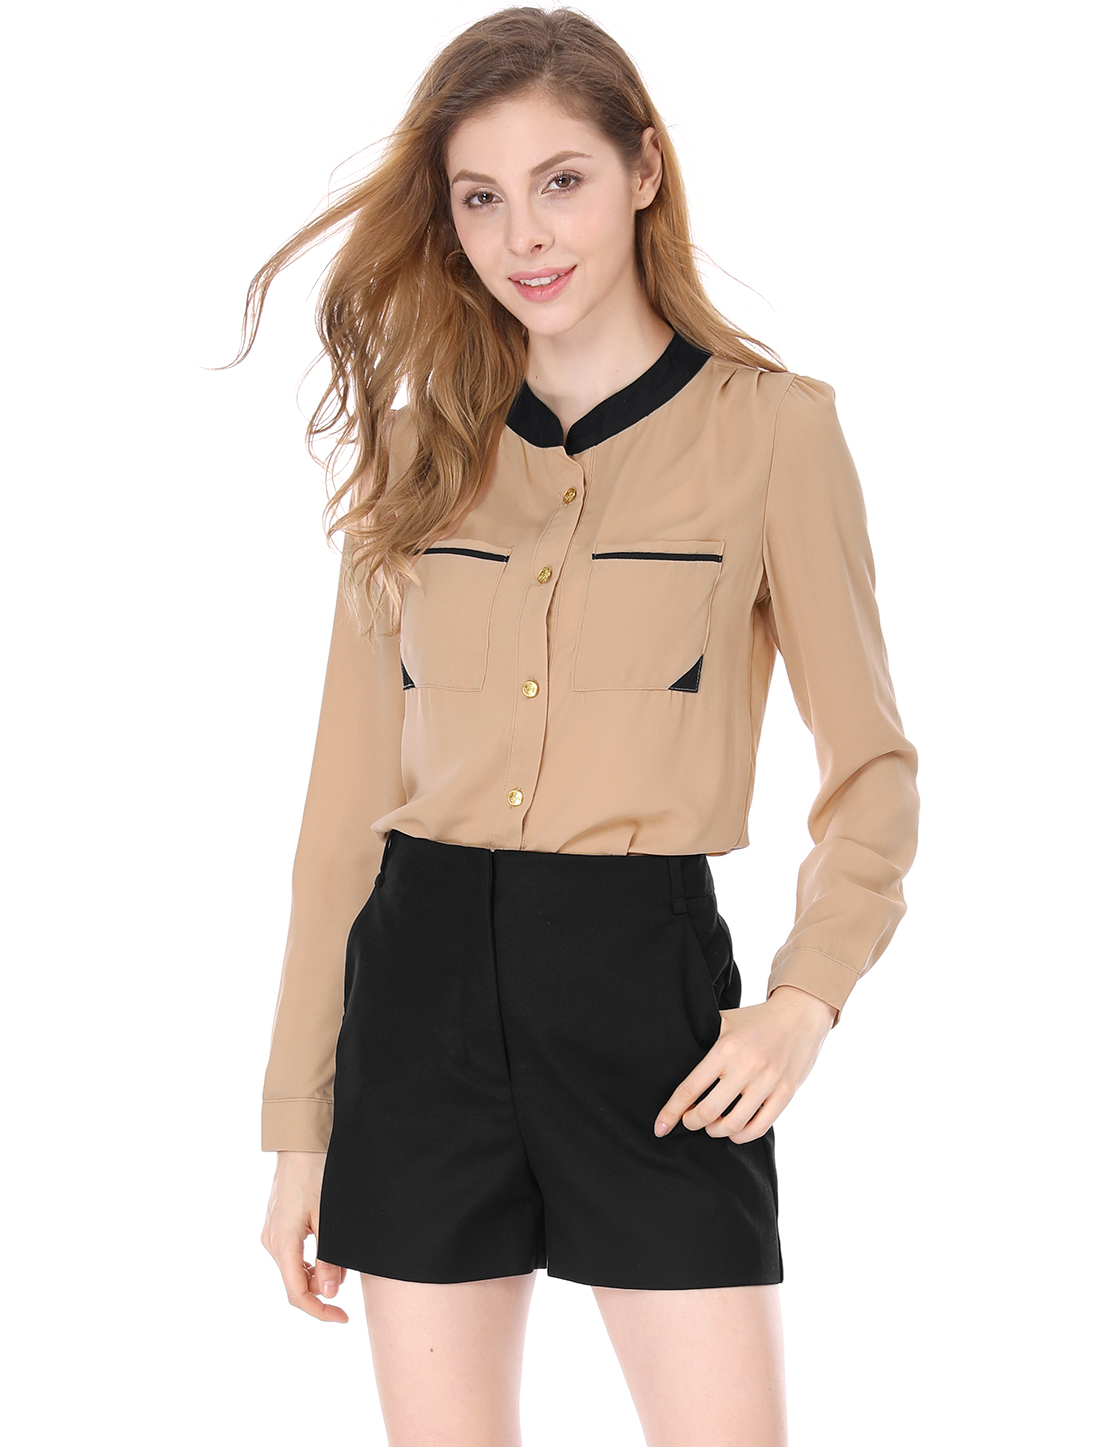 Women See Through Button Down Round Hem Autumn Chiffon Shirt Beige XS